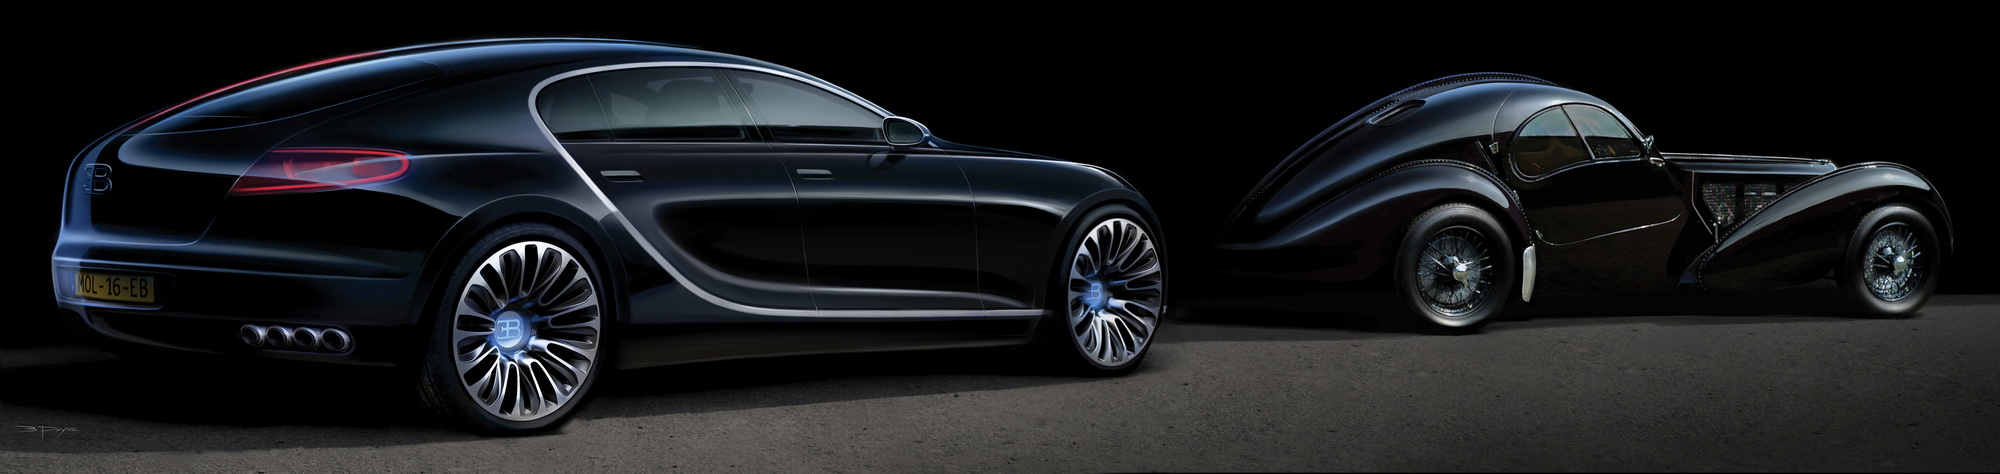 bugatti 16c galibier - photo #22